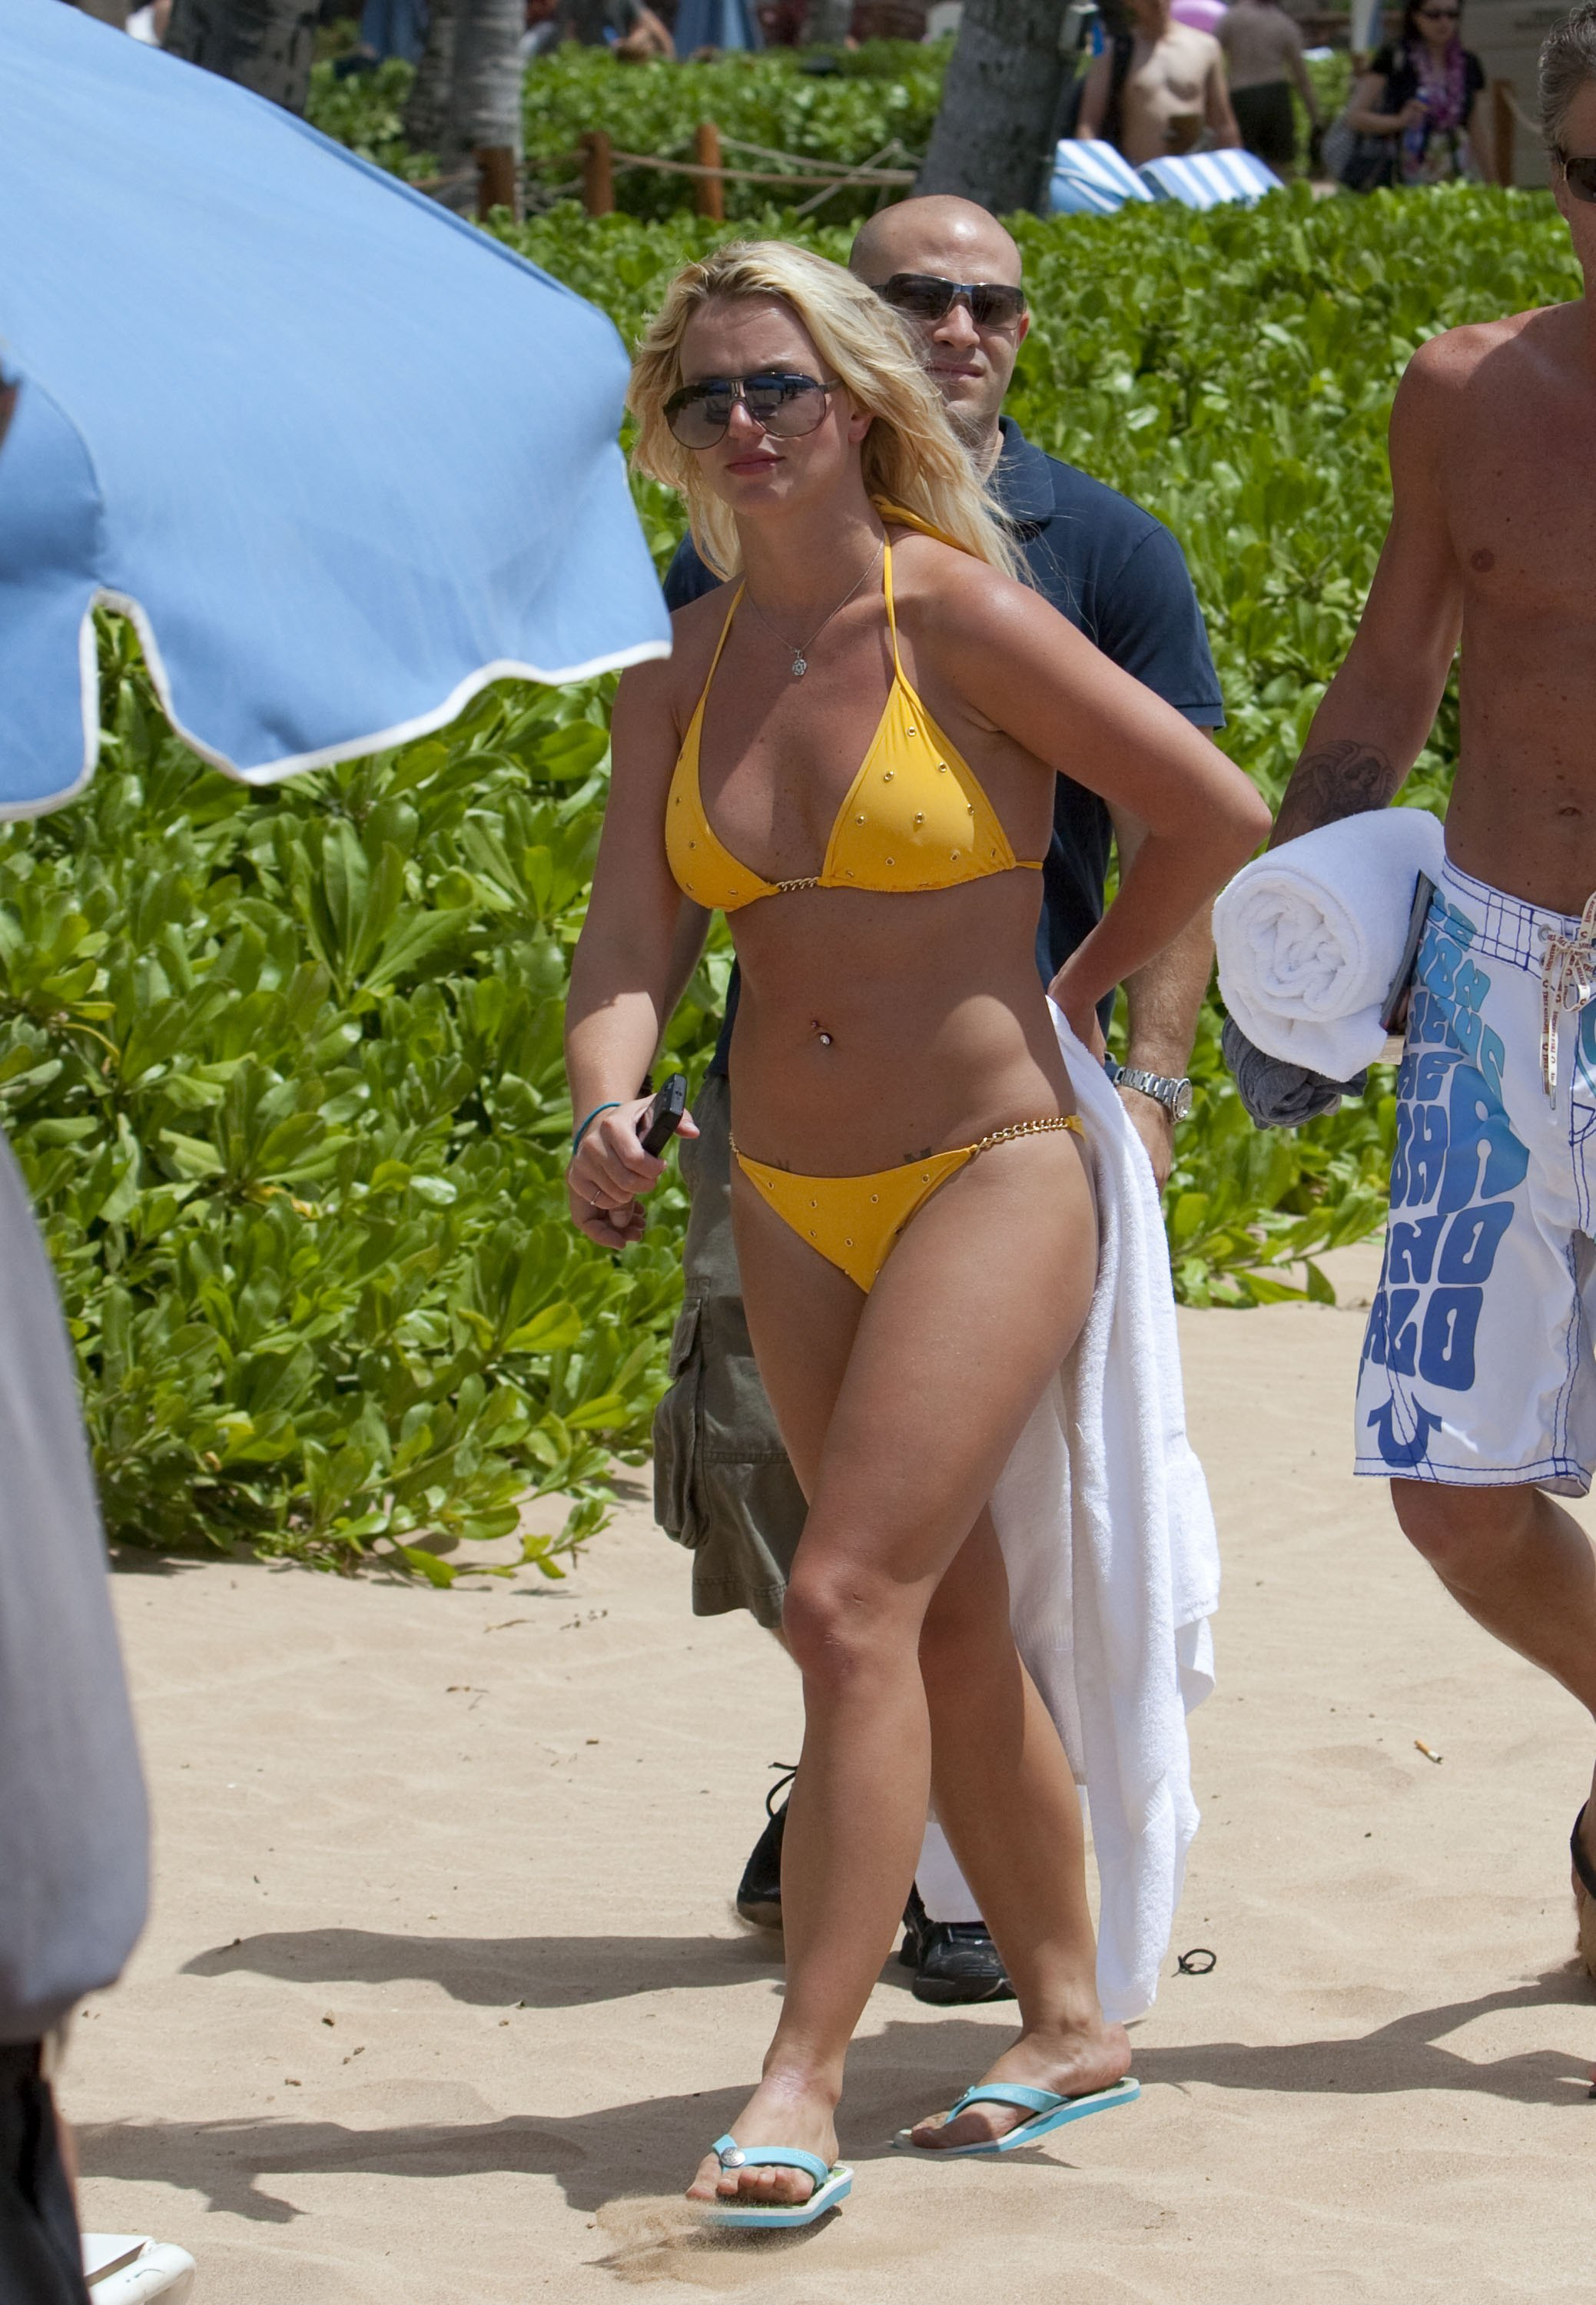 Britney Spears Yellow Bikini Candids in Hawaii Pic 1 of 35